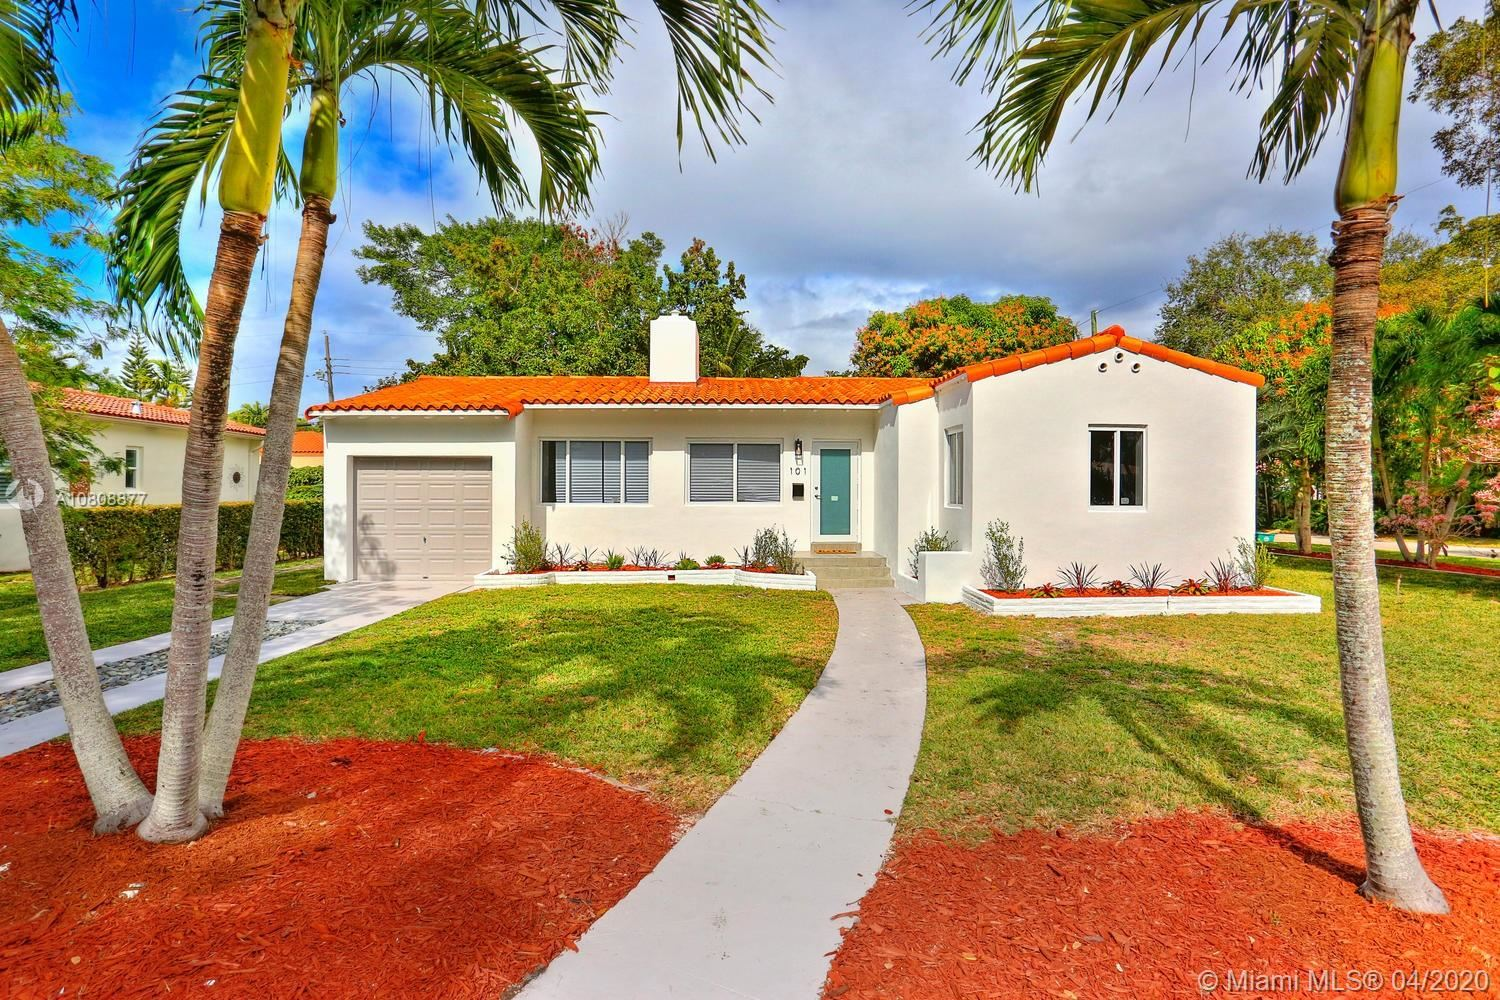 101 NW 100th Ter, Miami Shores, FL 33150 - #: A10808877